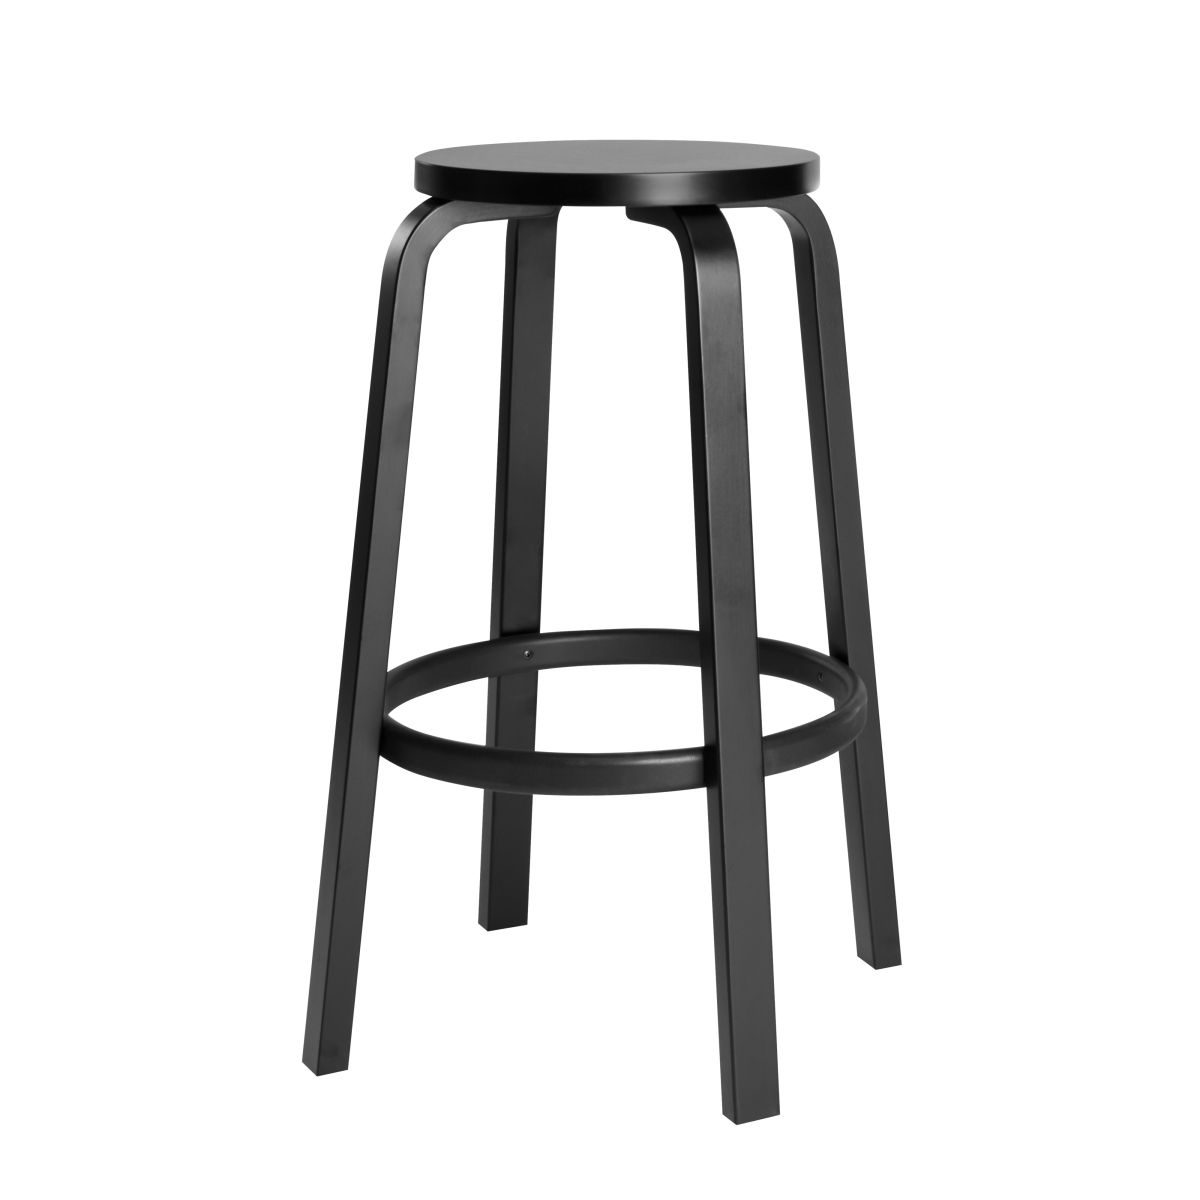 bar stool baby high chair luxury chairs for babies artek products